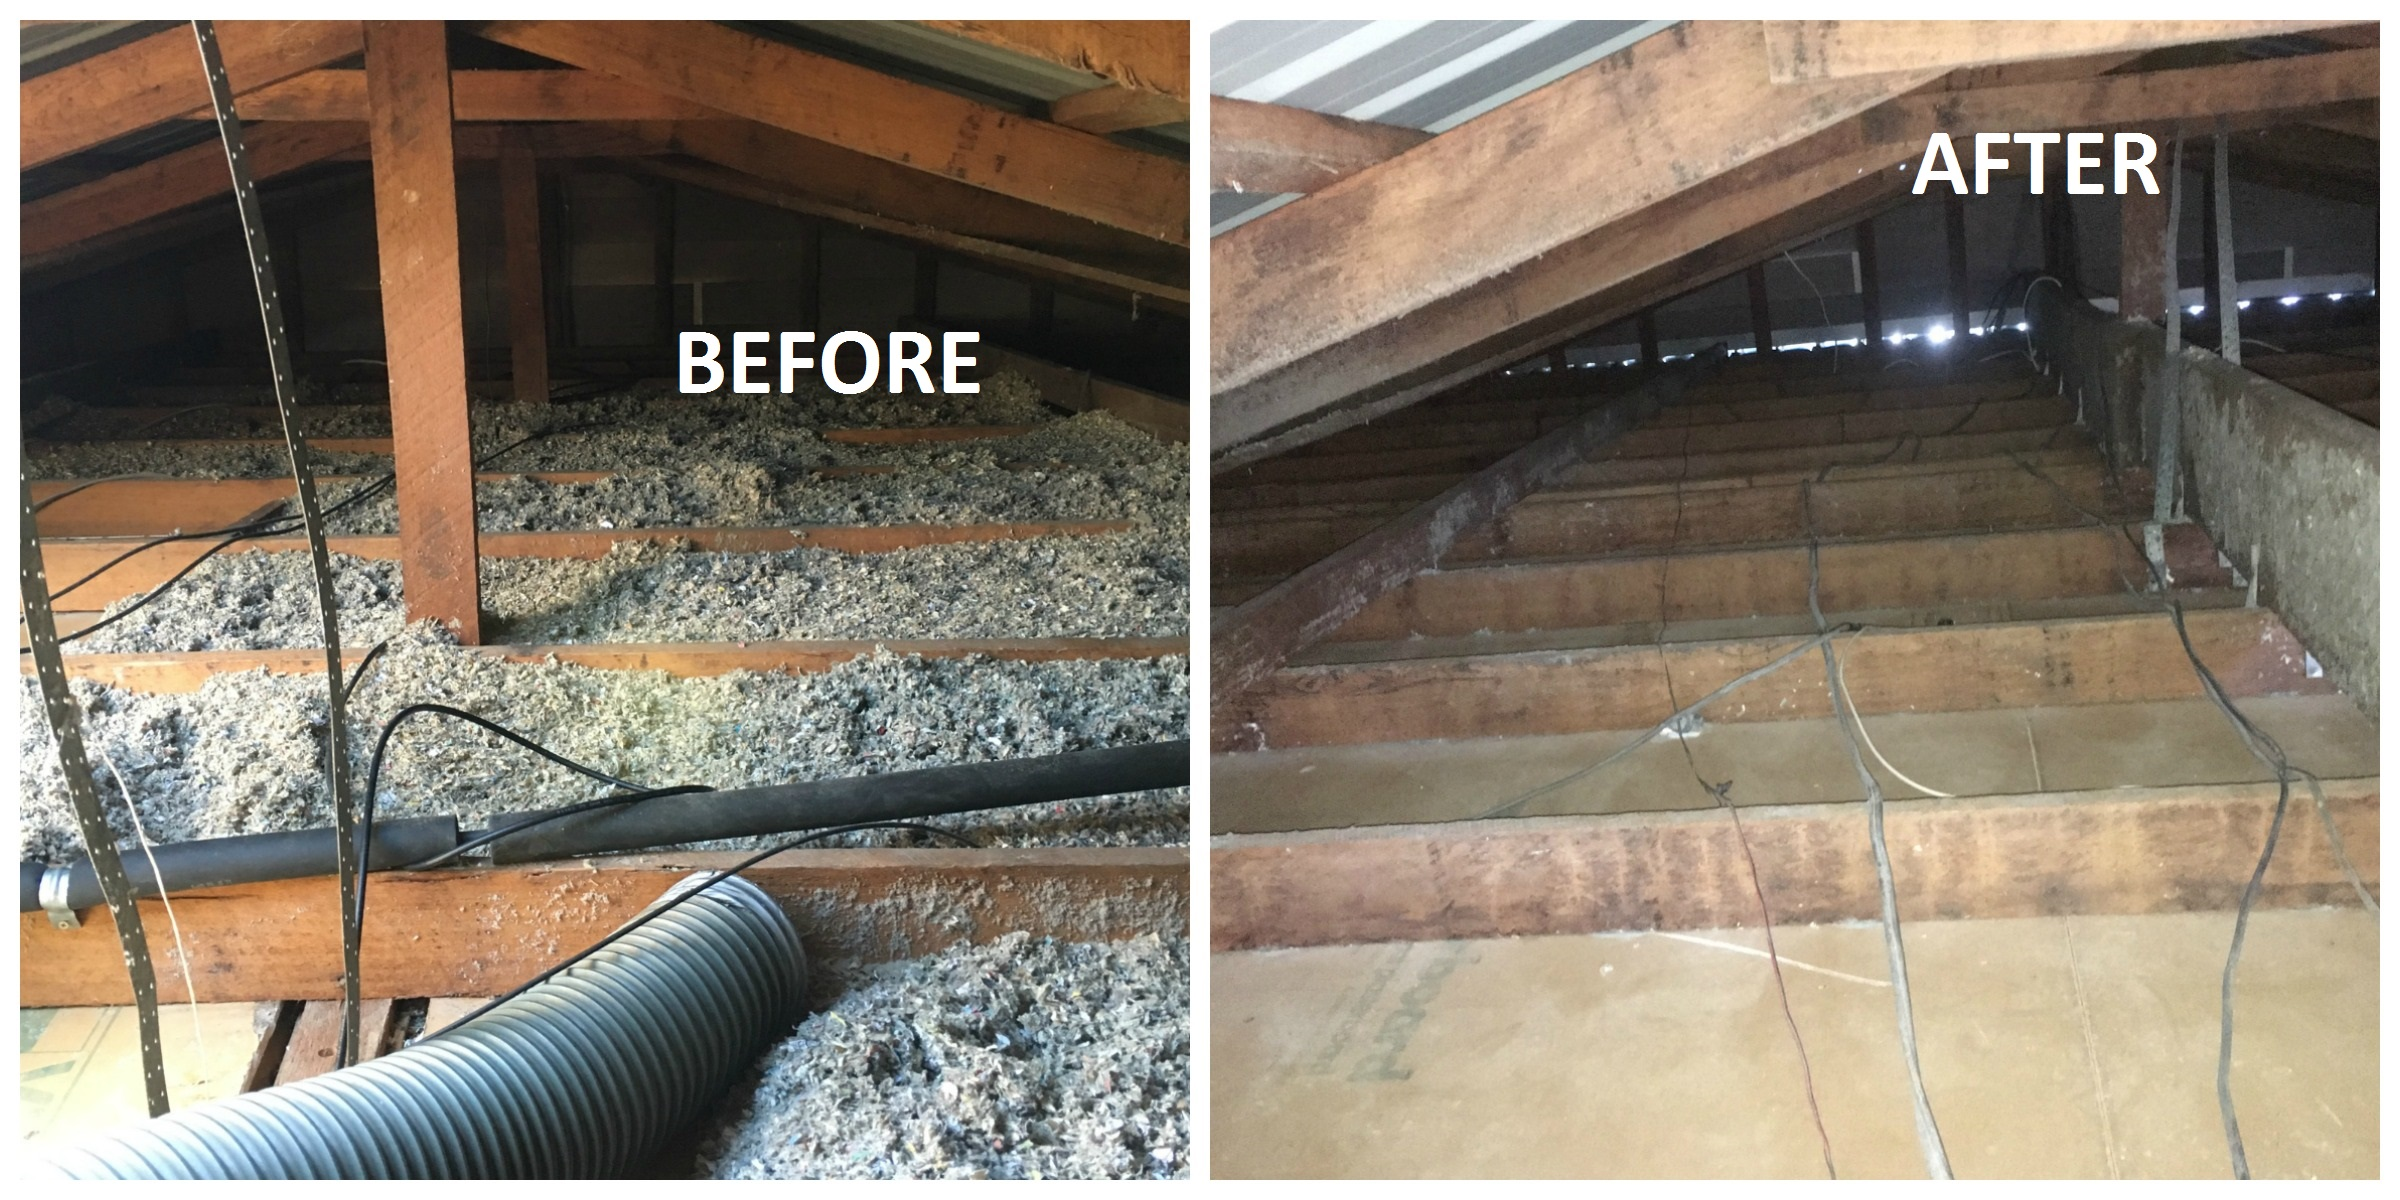 insulation-removal-before-after